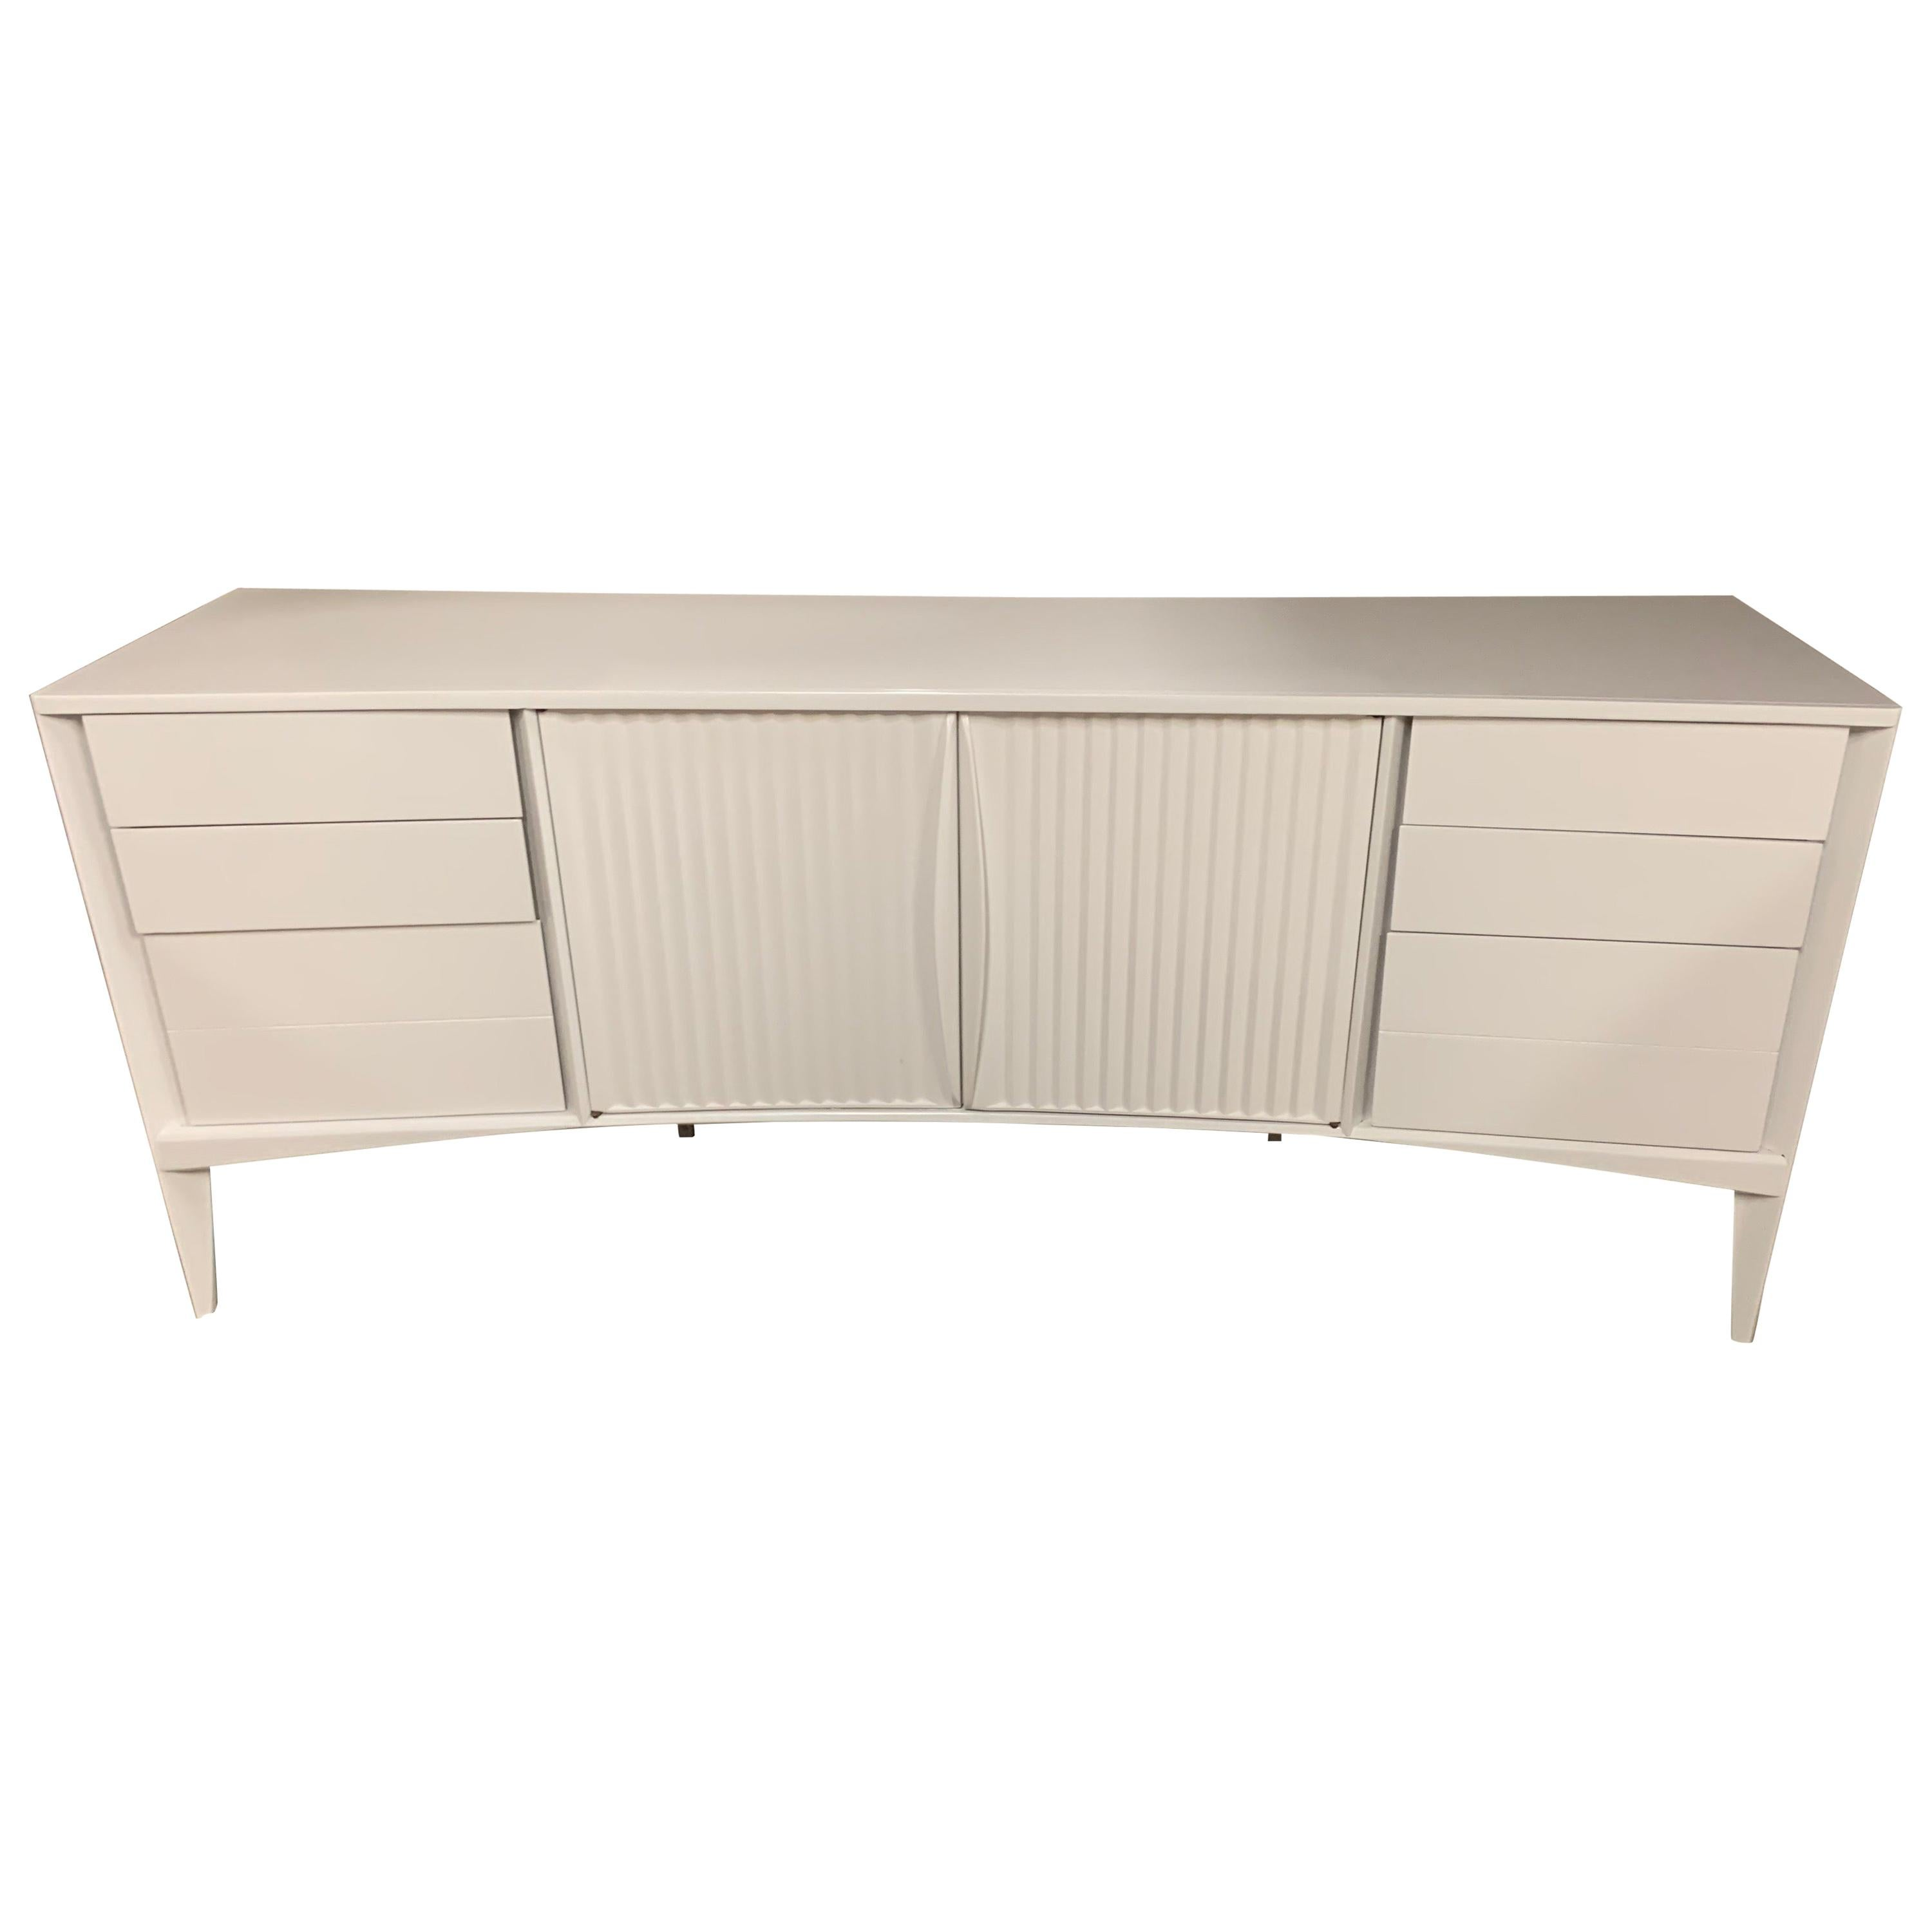 Mid-Century Danish Modern Curved Lacquered White Cabinet Dresser Buffet